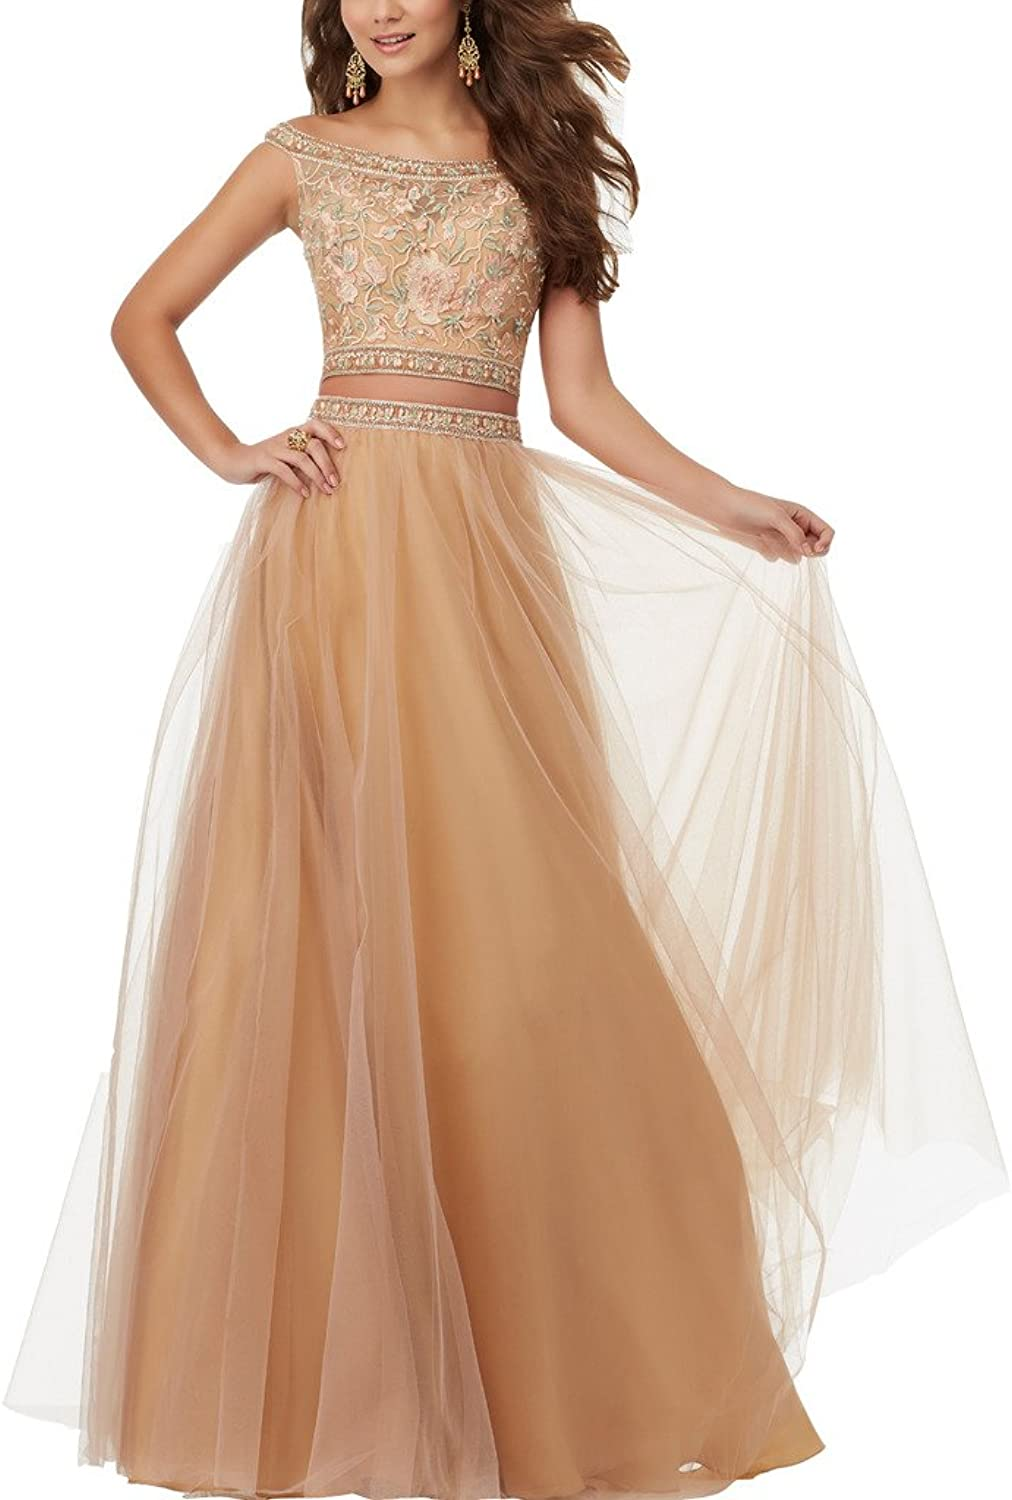 Topquality2016 Women's 2017 Lace Two Piece Prom Ball Dresses Evening Party Gown